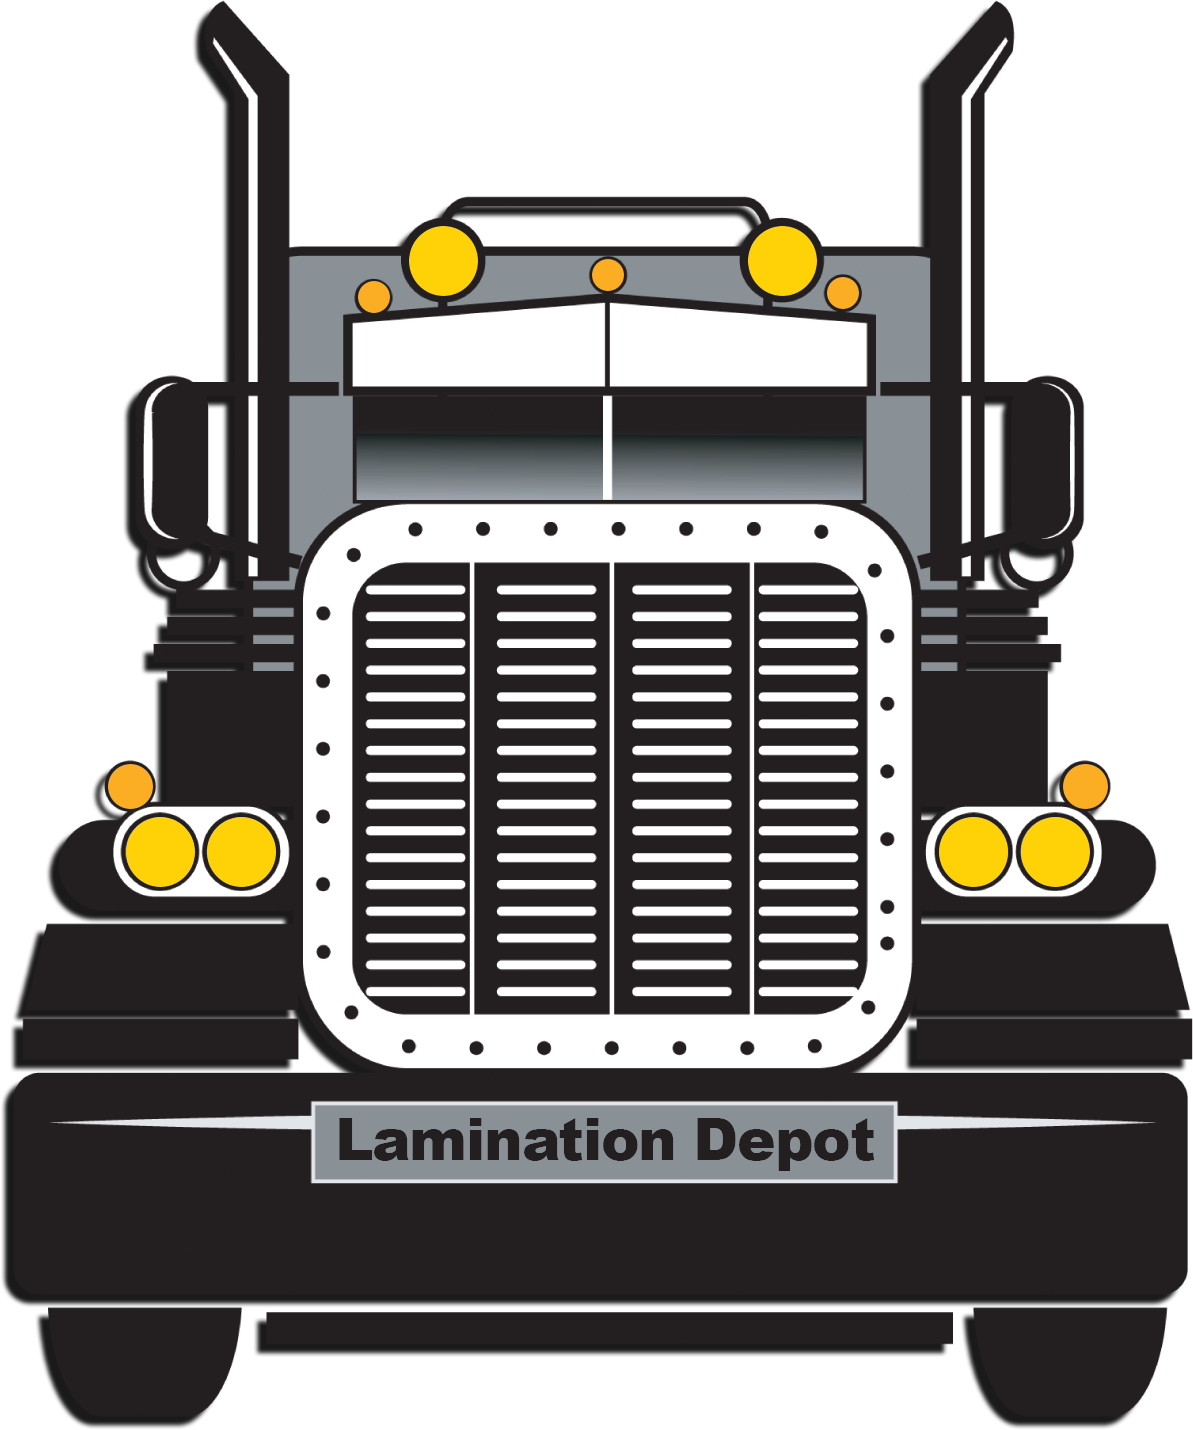 Semi Truck with Lamination Depot License Plate